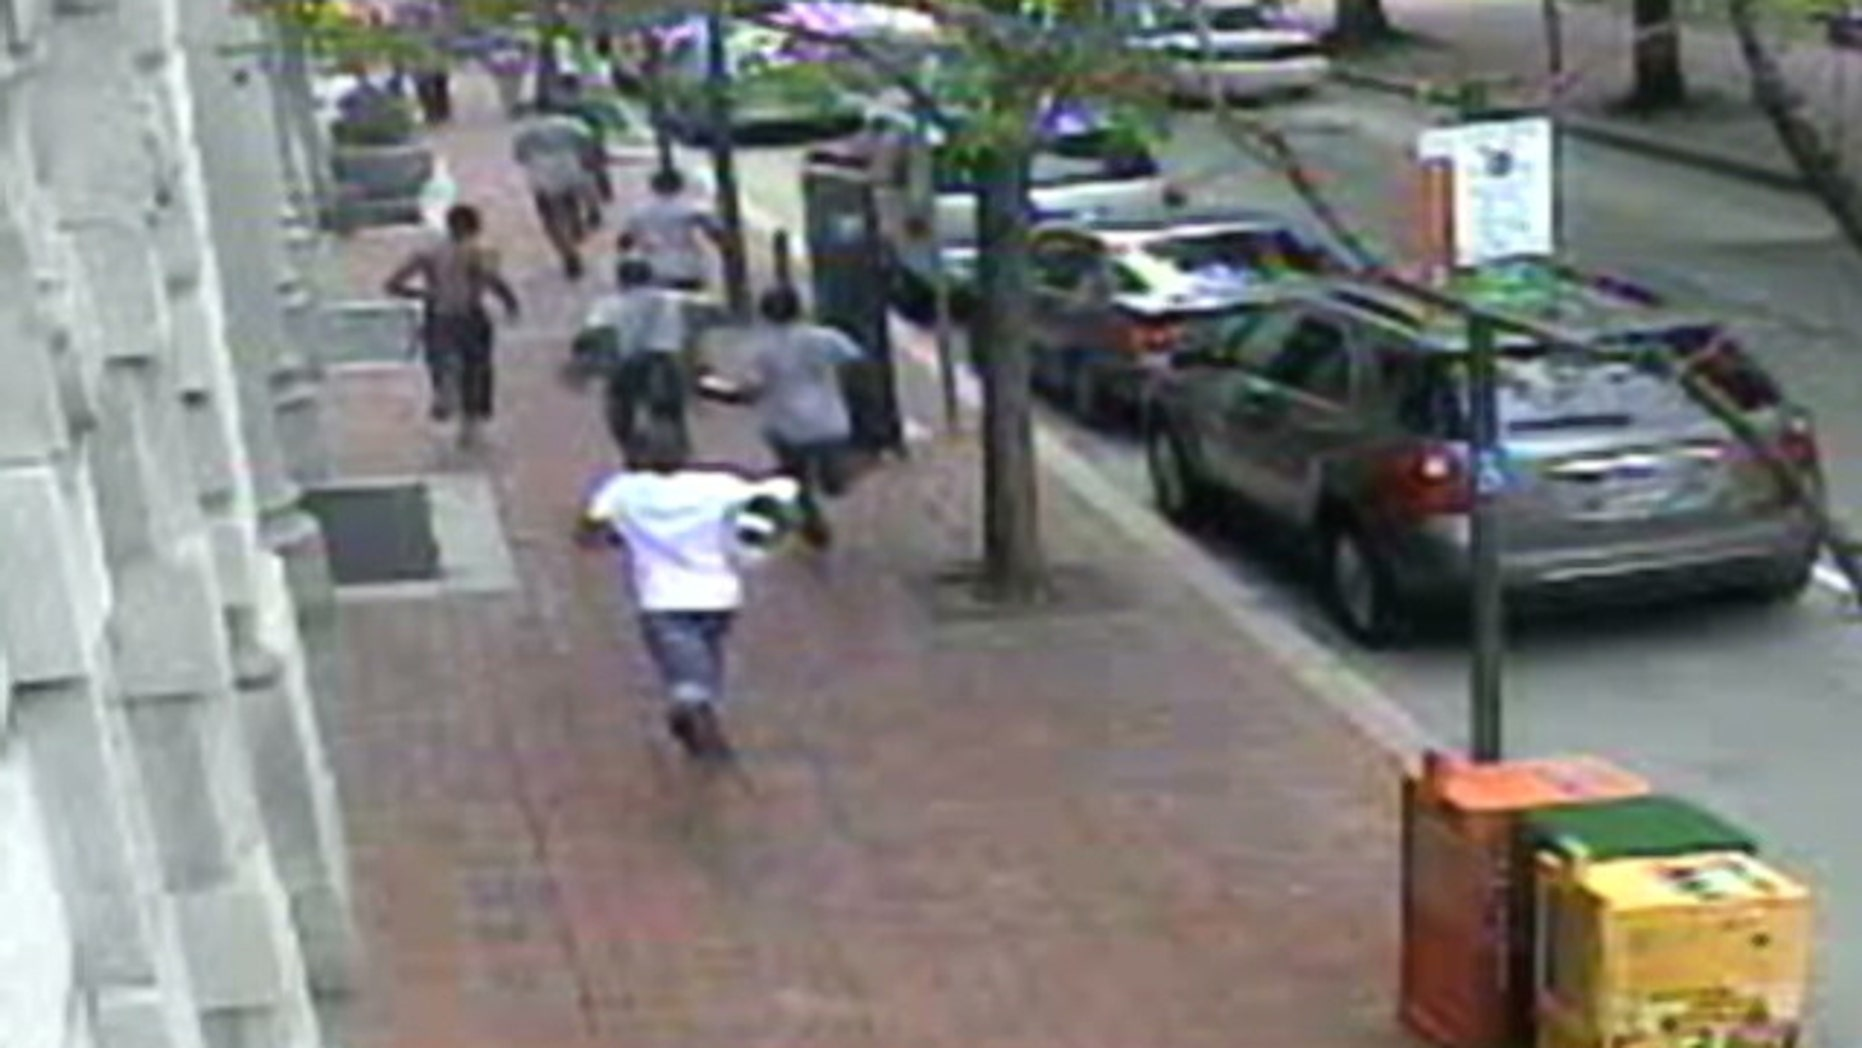 """This security image, obtained by Fox affiliate WTXF-TV, shows a group of teens running from an alleged """"flash mob"""" attack in Philadelphia's Old City section on July 29. Three juveniles have so far been arrested in connection to the assault on an innocent bystander, police said."""